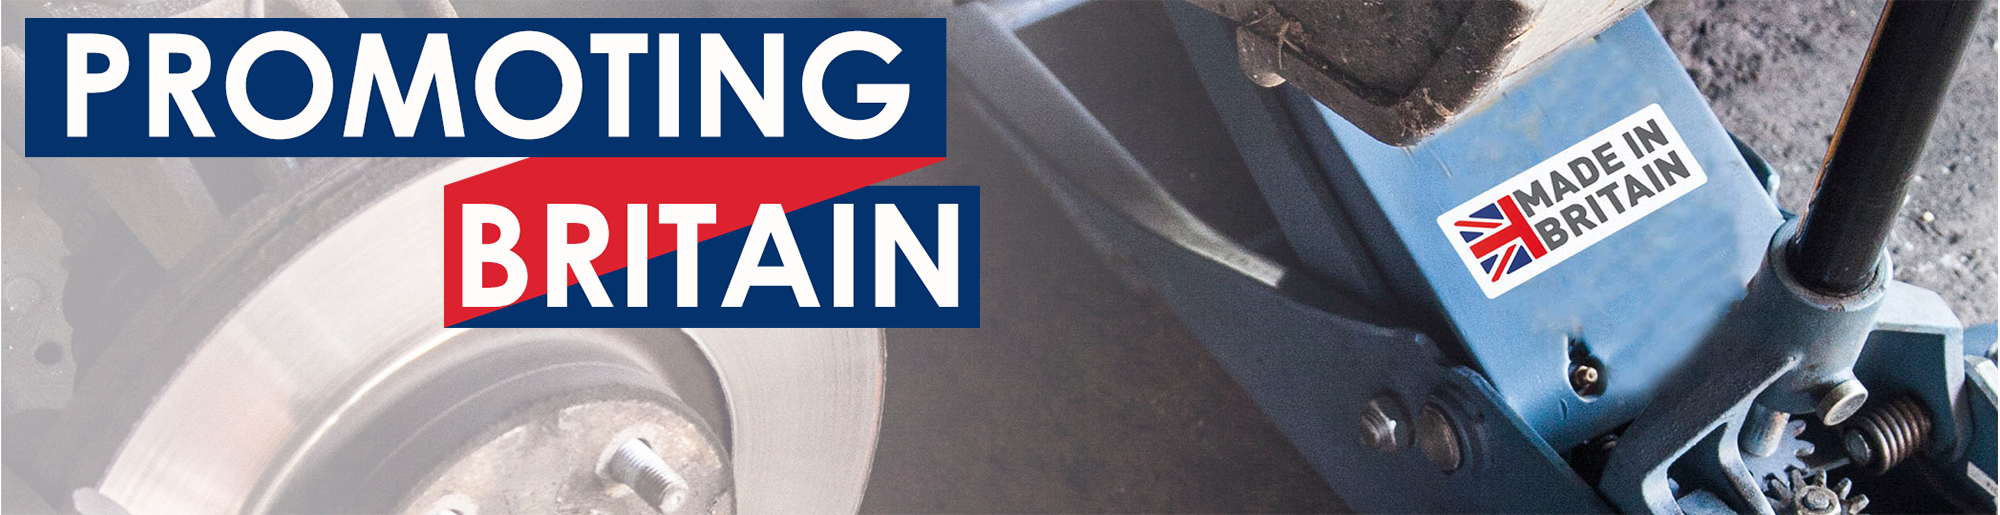 Promoting Britain through free Made in Britain logo